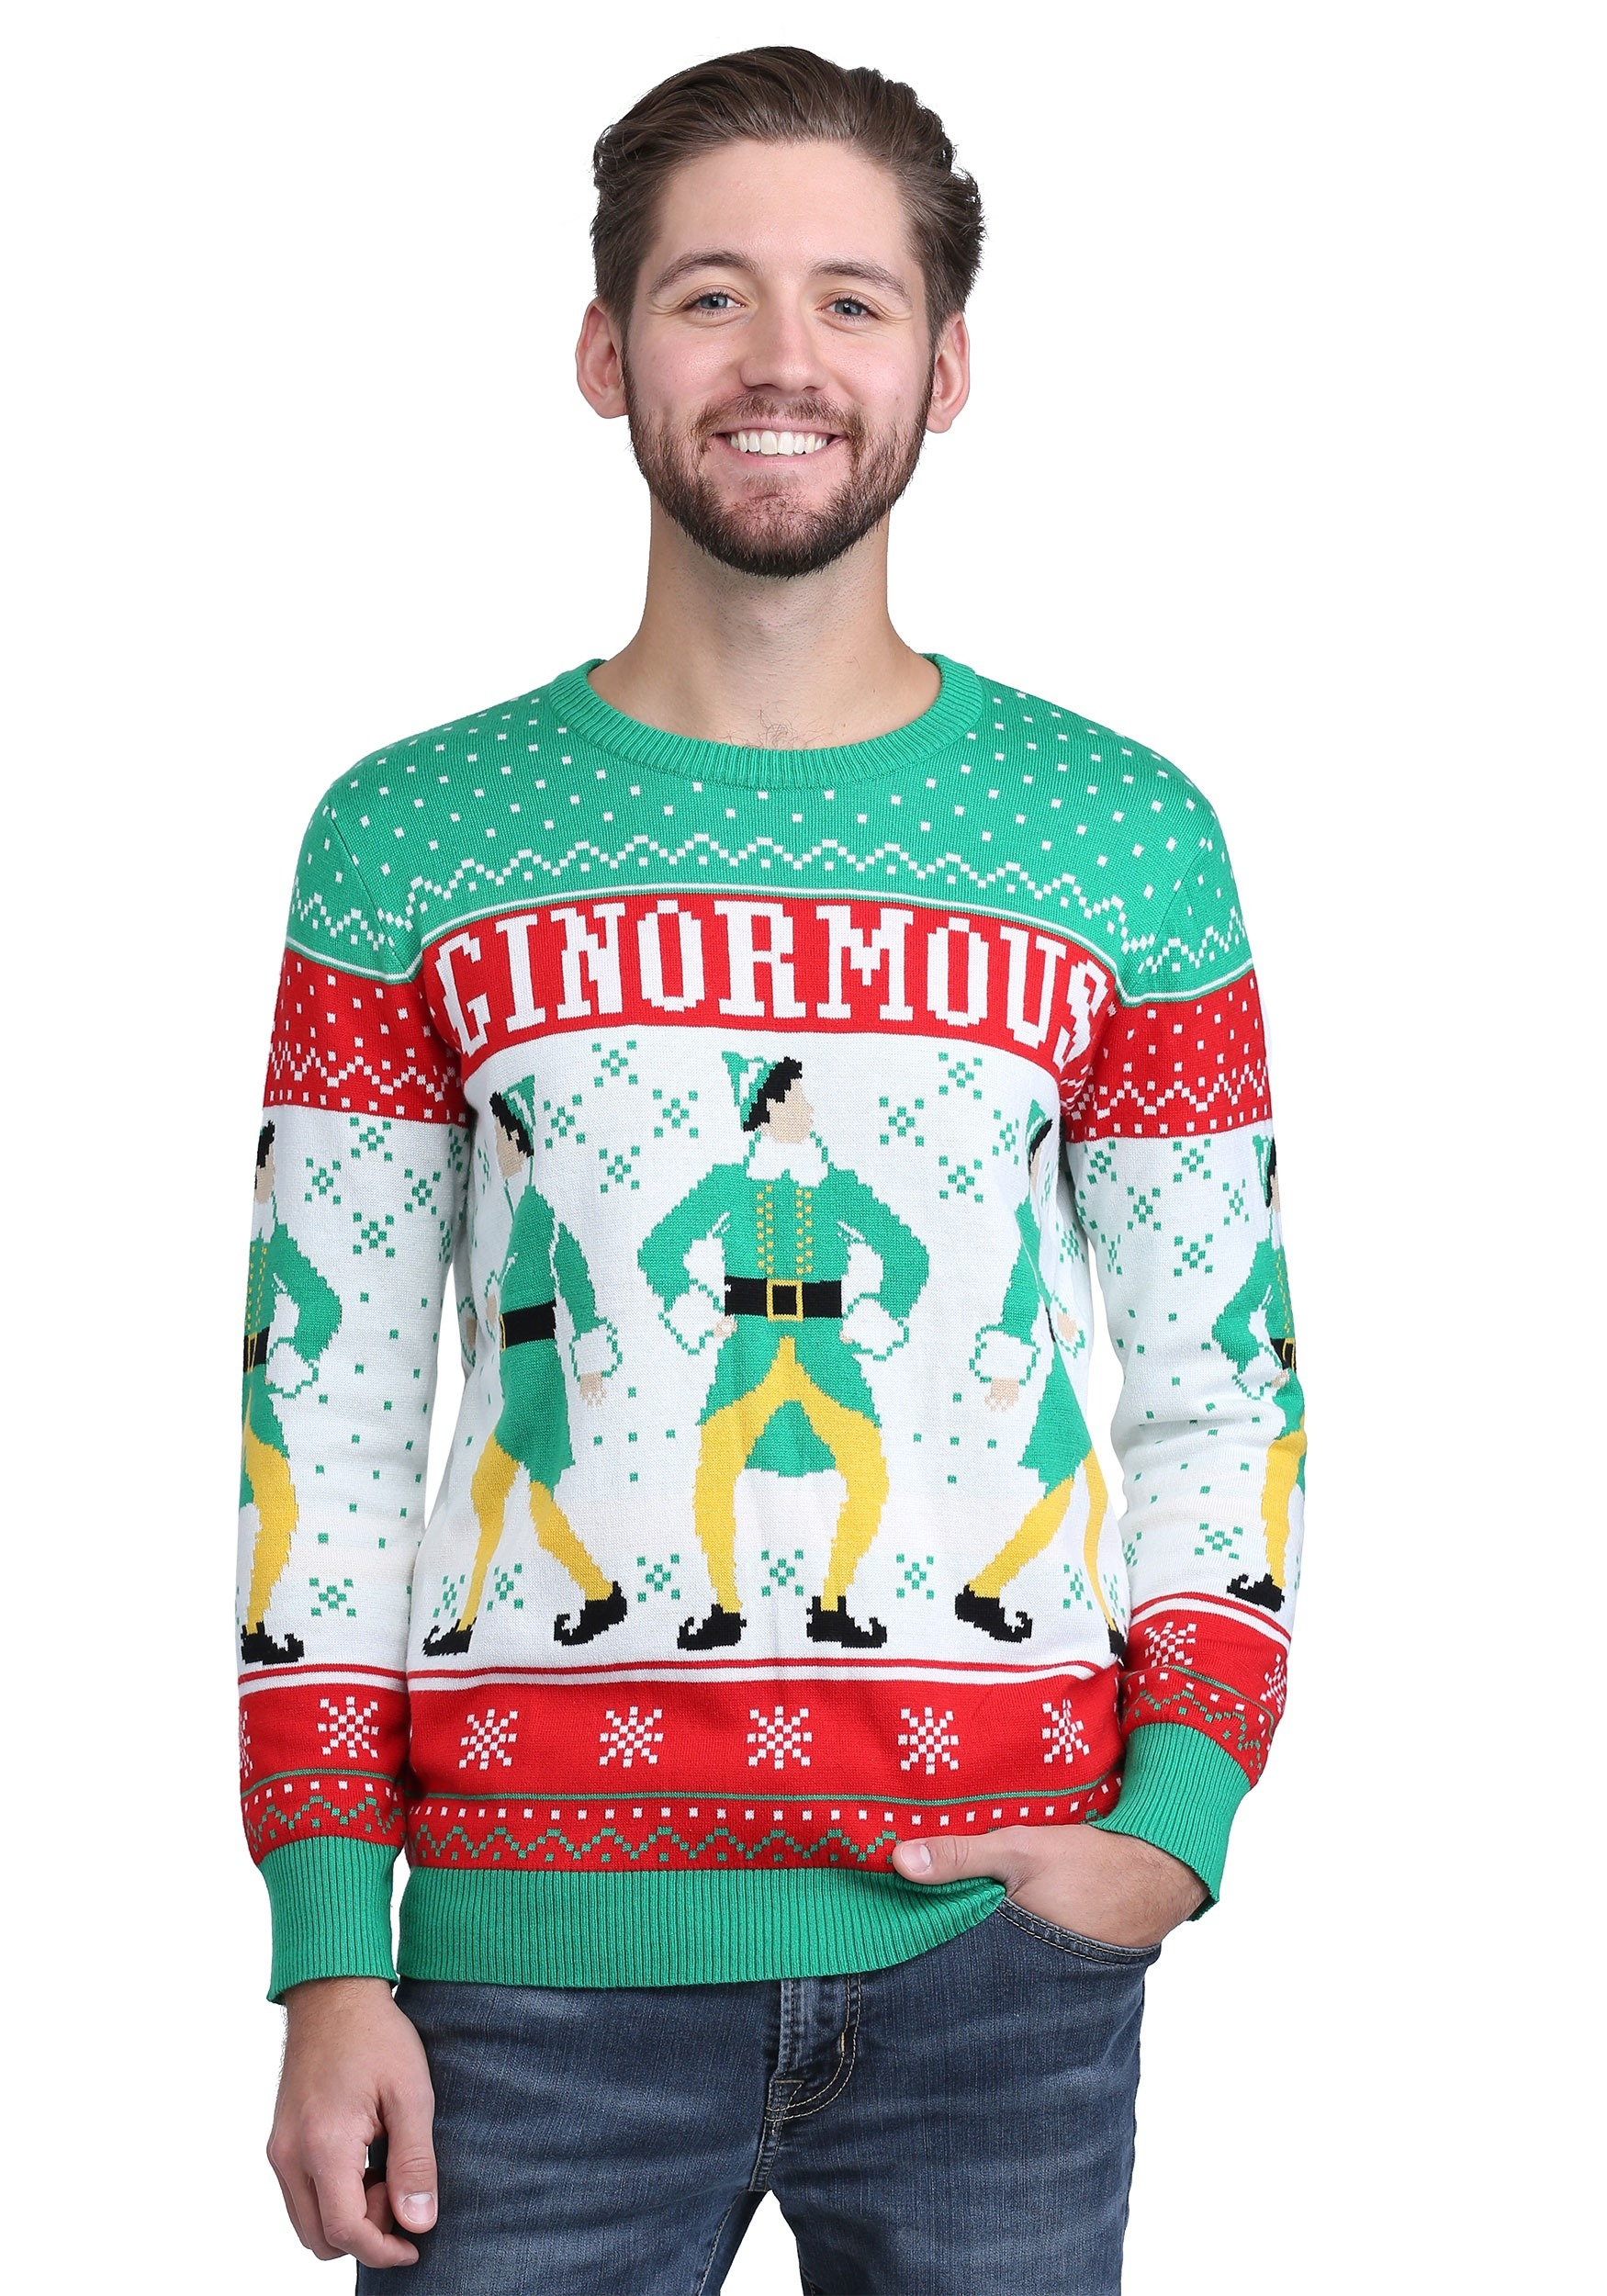 elf ginormous adult knit sweater - Buddy The Elf Christmas Sweater